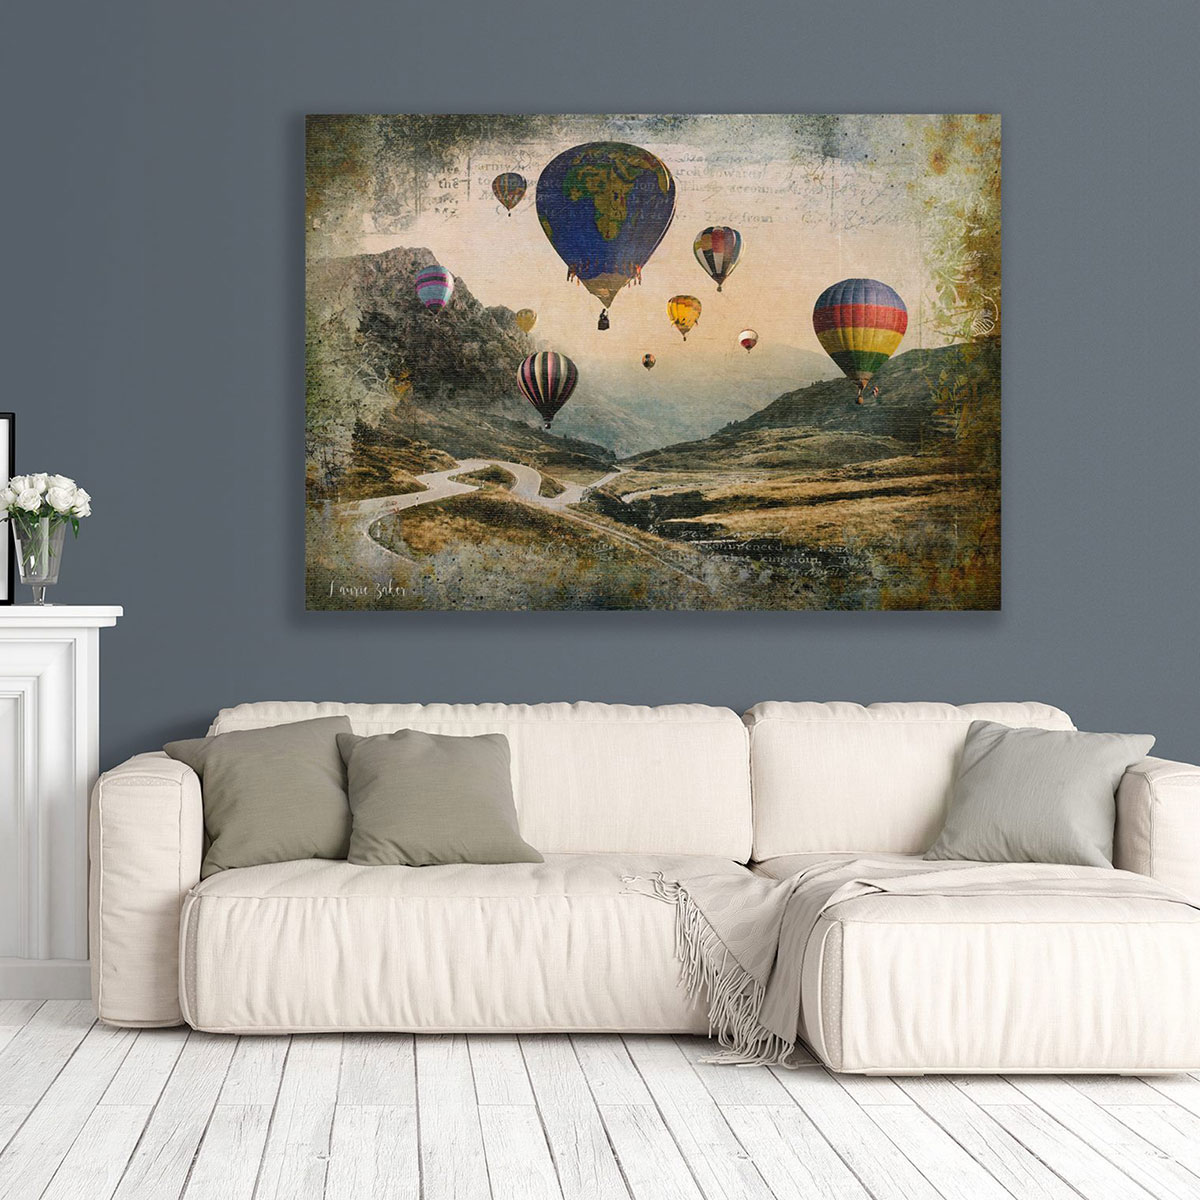 Art Boja Large Canvas Prints Wall Art Featuring Air Balloons